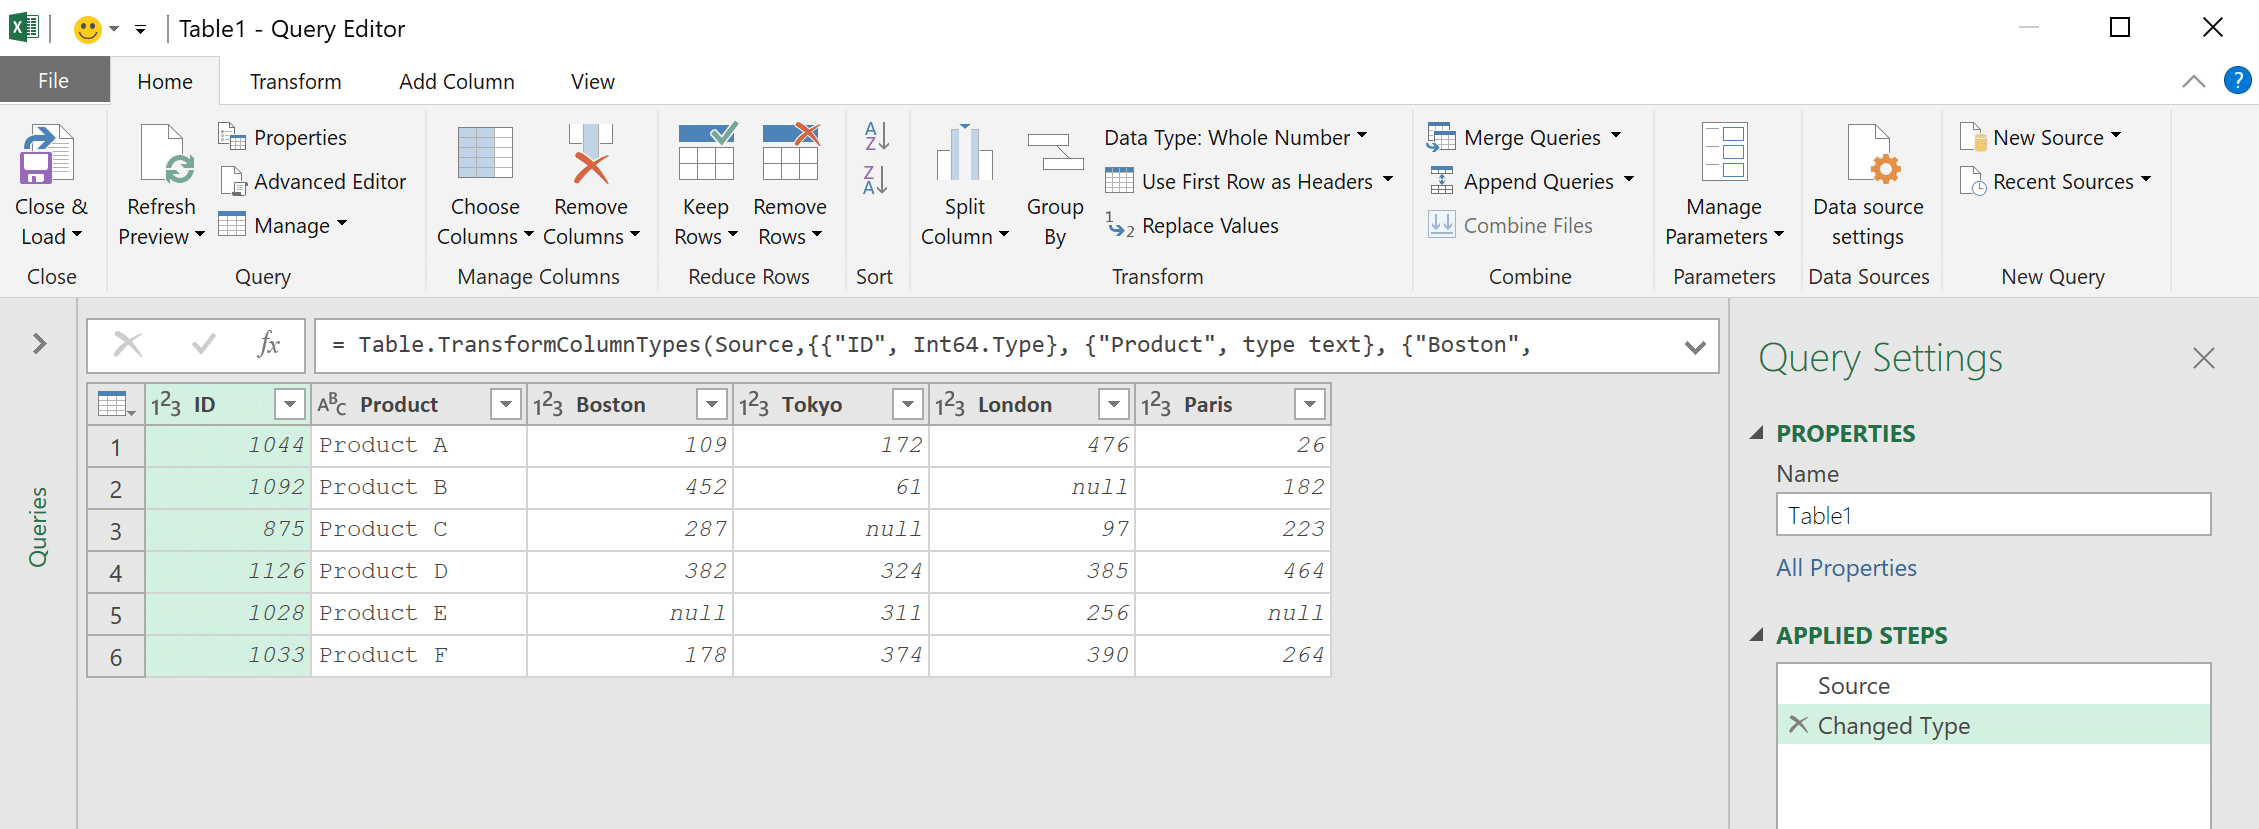 The Query Editor window opens with the table loaded